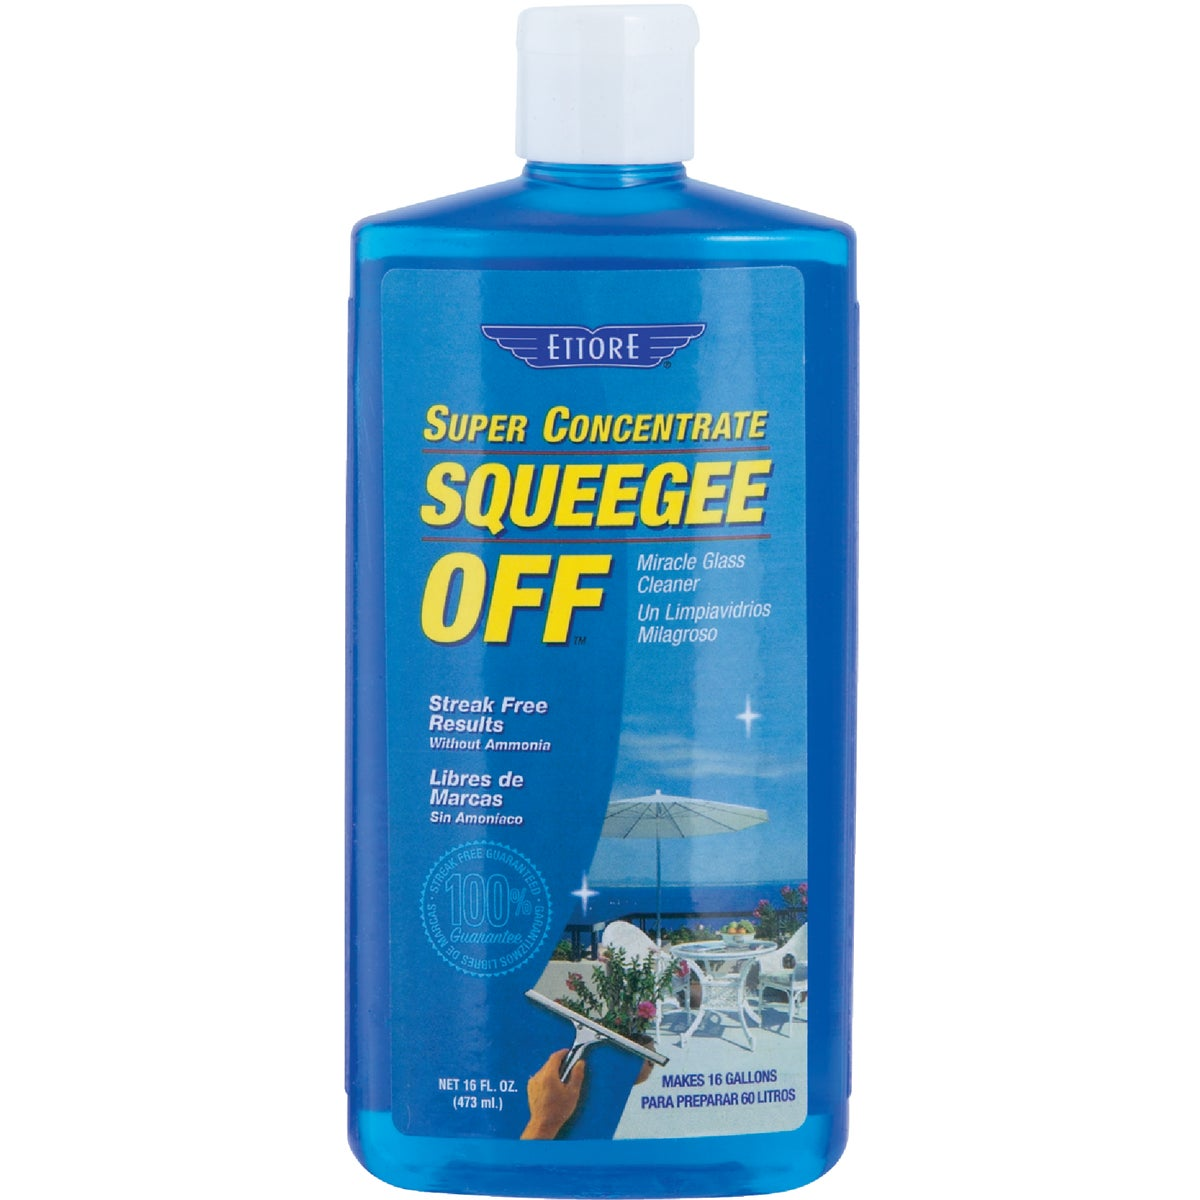 SQUEEGEE WINDOW CLEANER - 30116 by Ettore Products Co